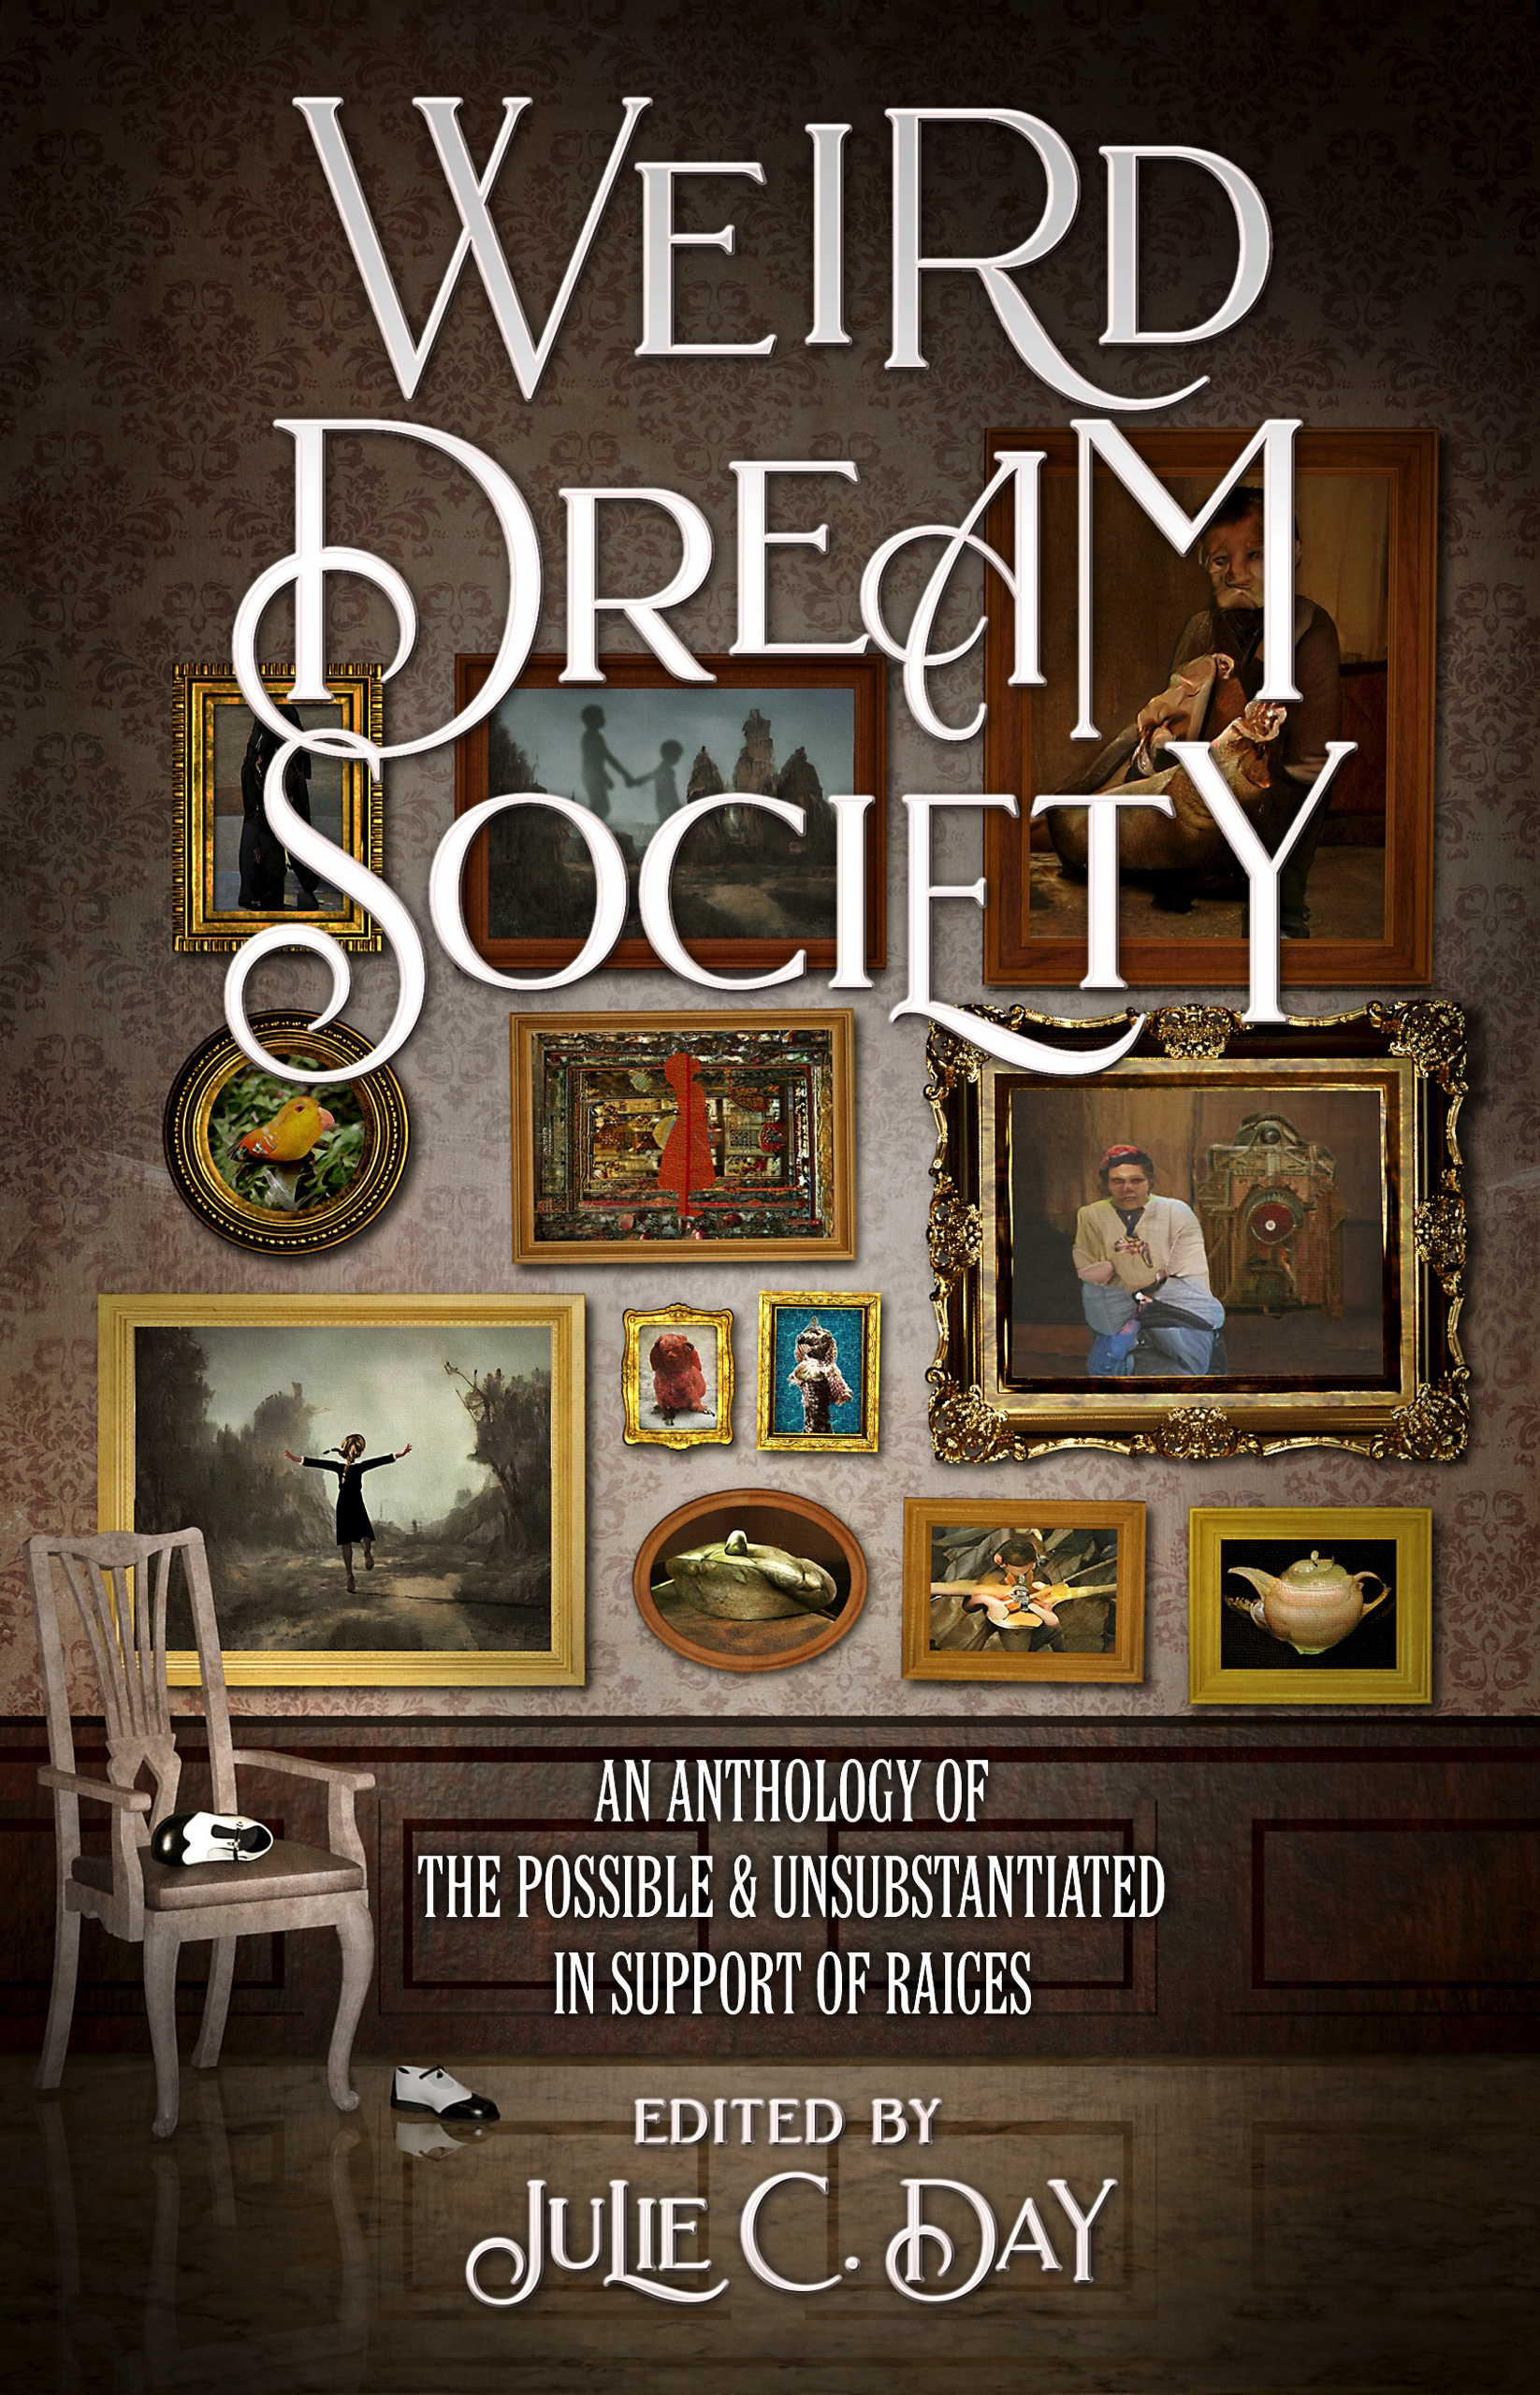 Weird-Dream-Society-Kindle.jpg (1646×2560)